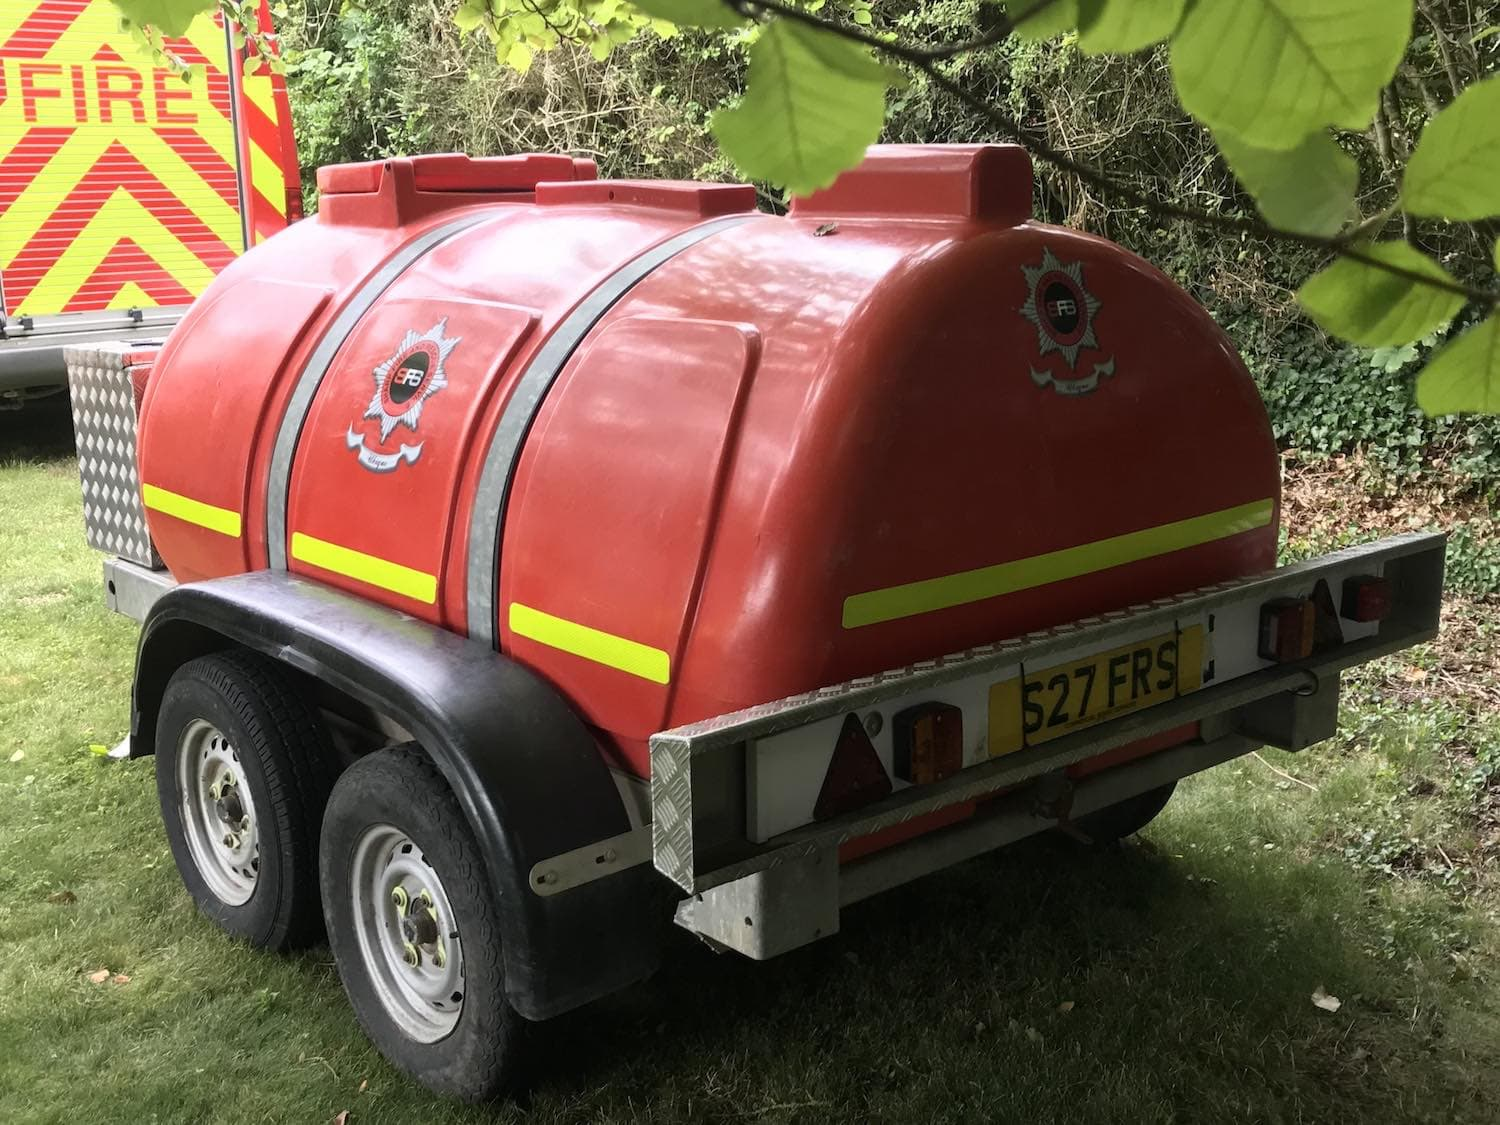 Water Bowser Sharp Fire and Rescue Service